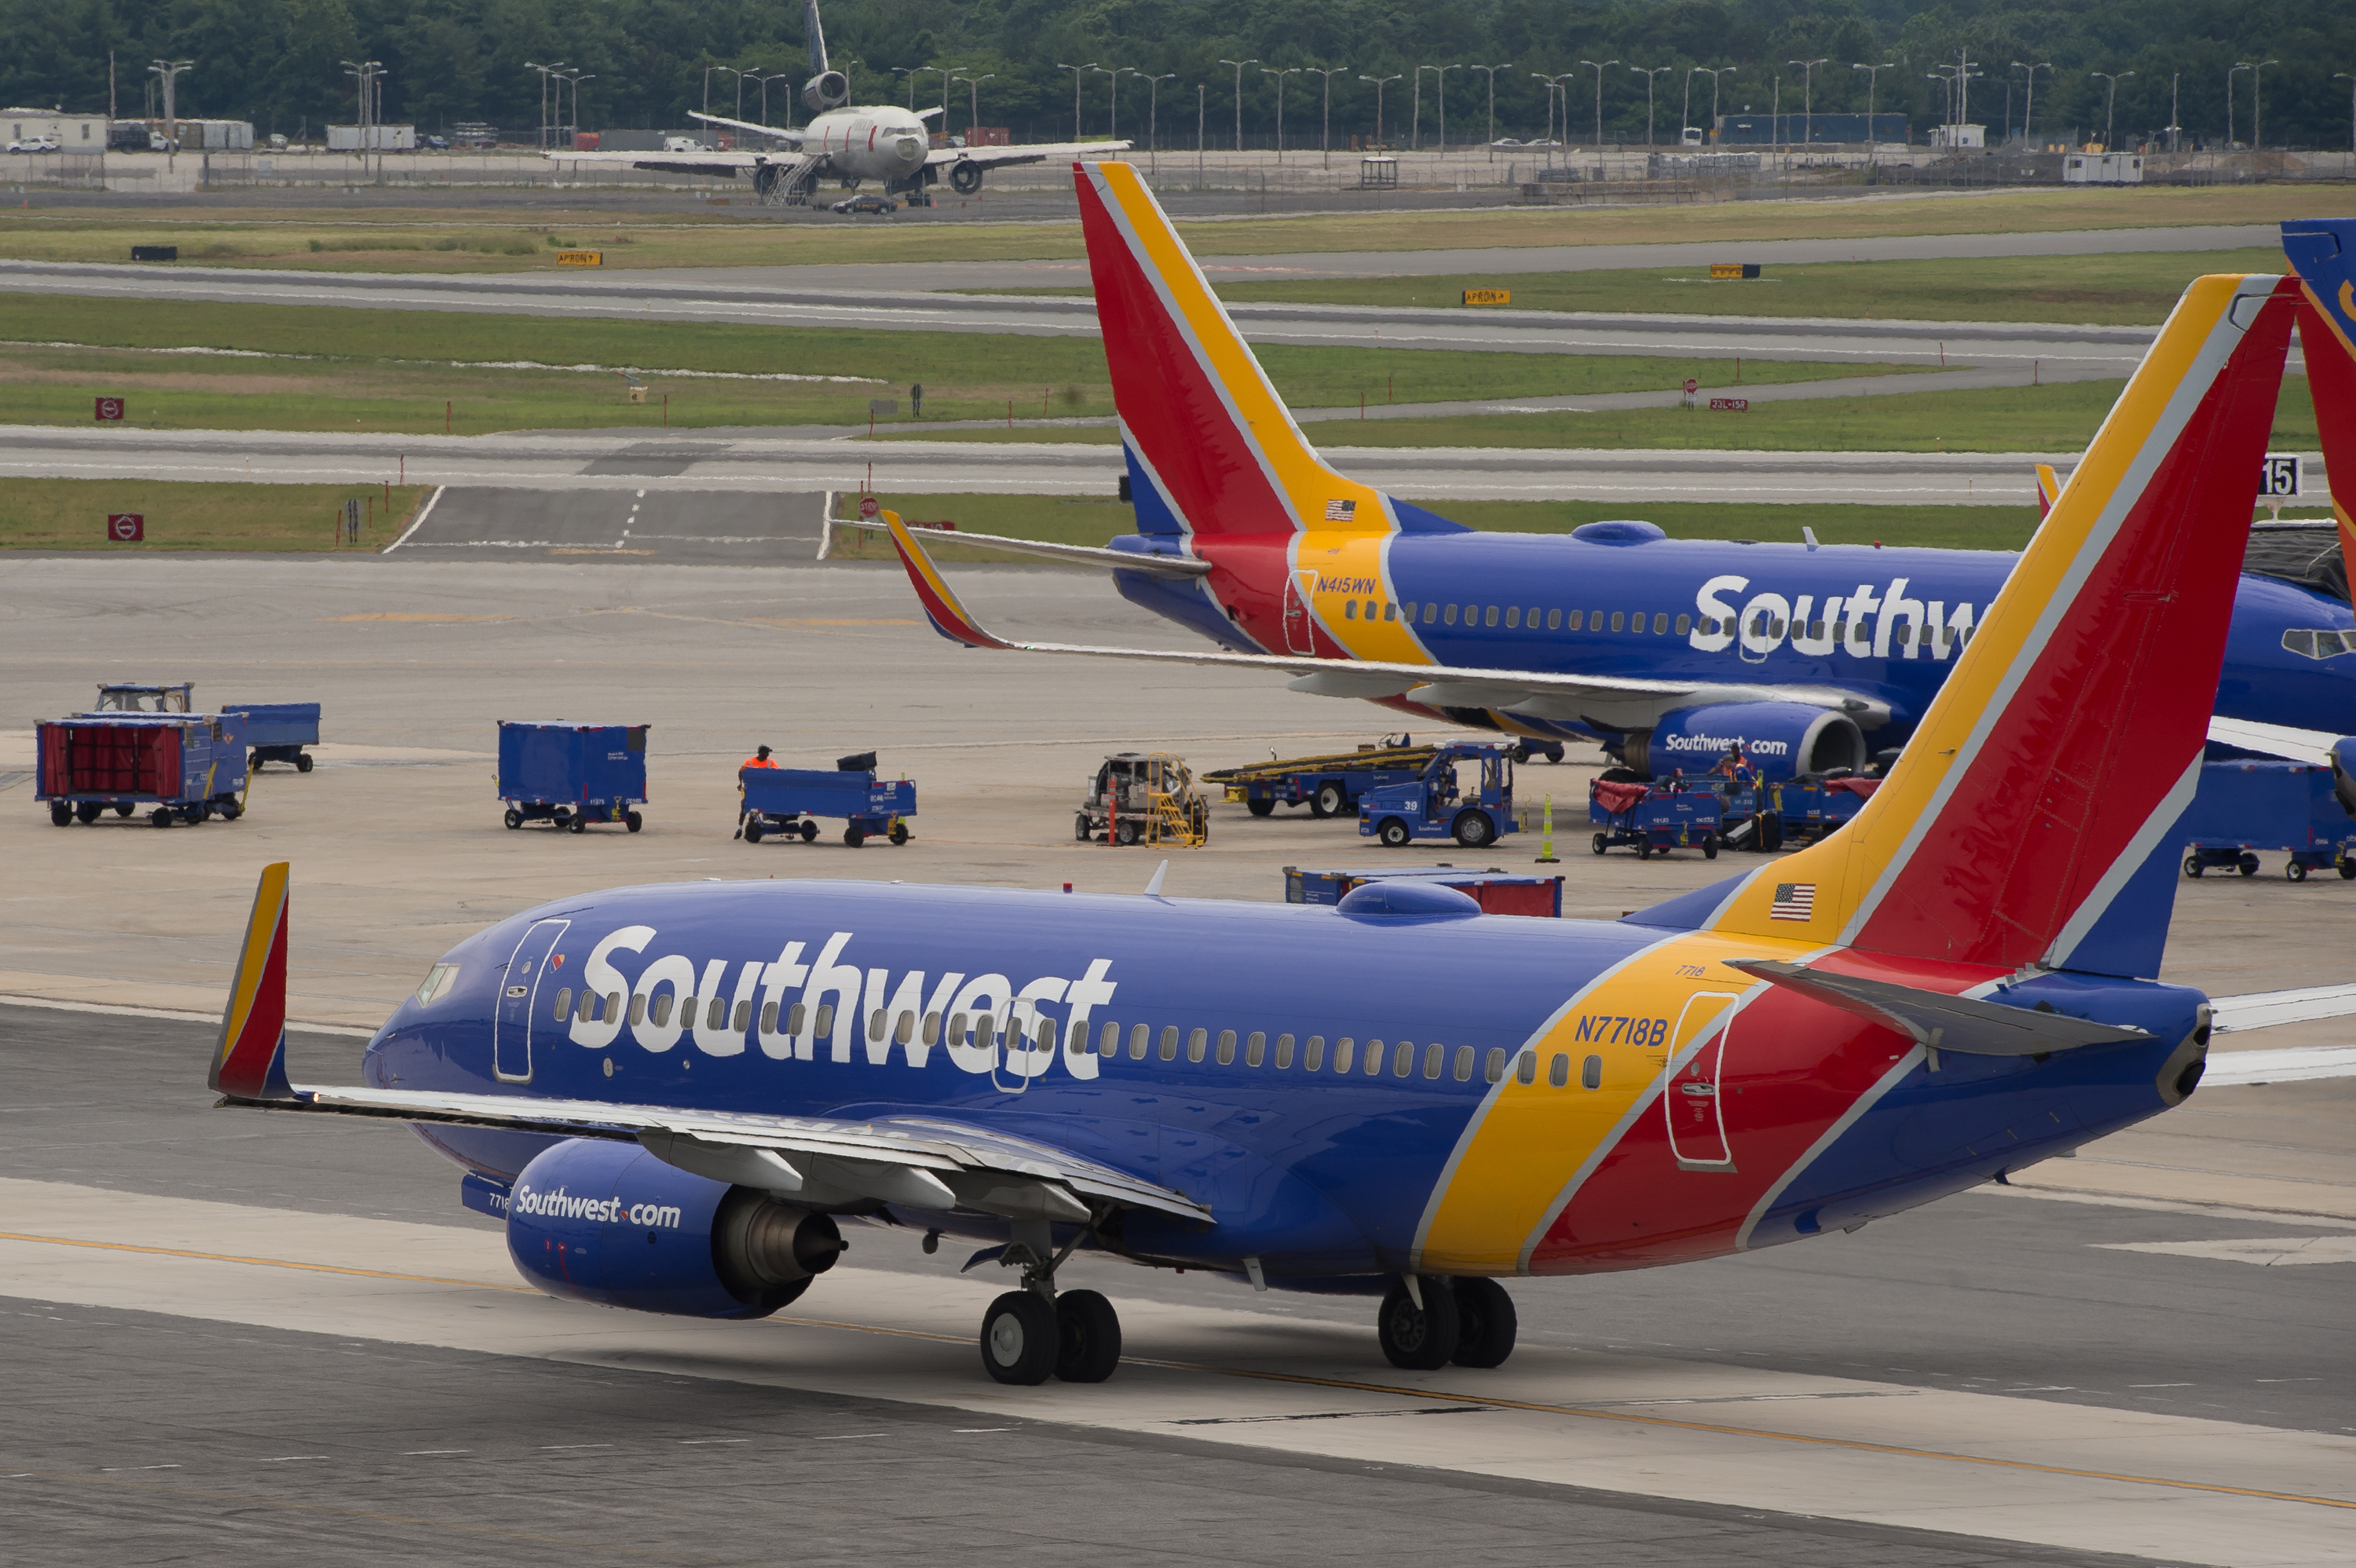 5-year-old Abcde Redford was mocked by a Southwest Airlines